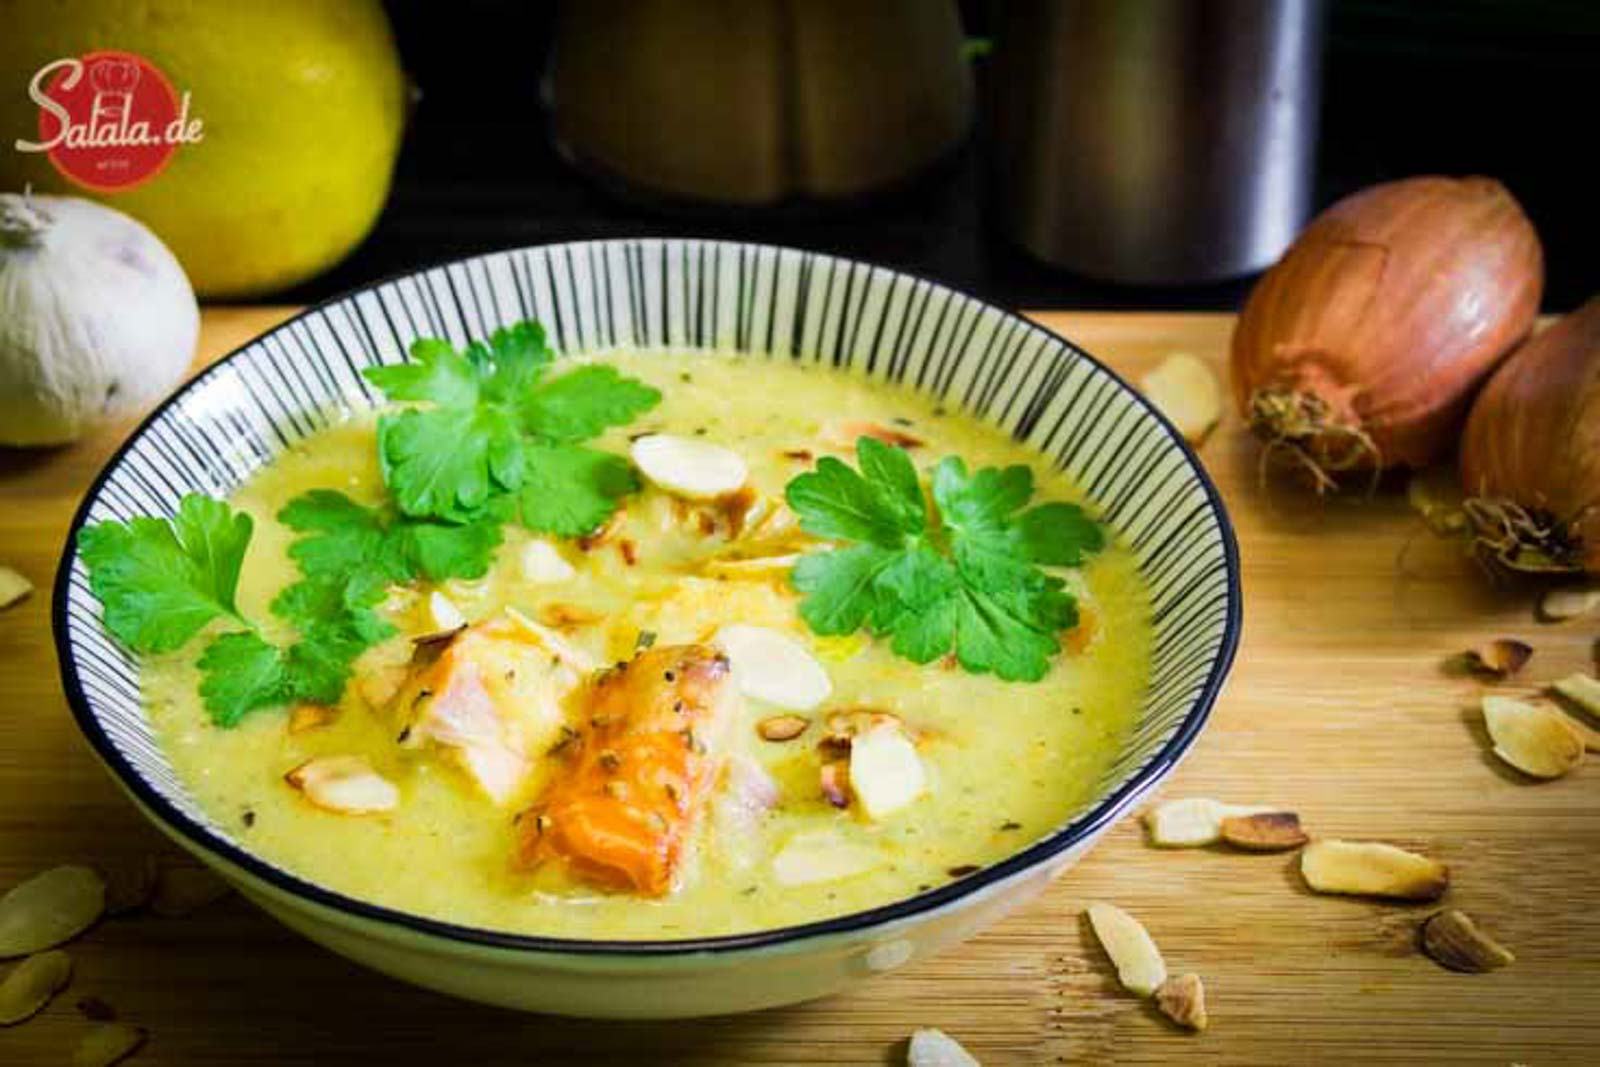 chicoree creme suppe mit stremellachs low carb glutenfrei salala.de